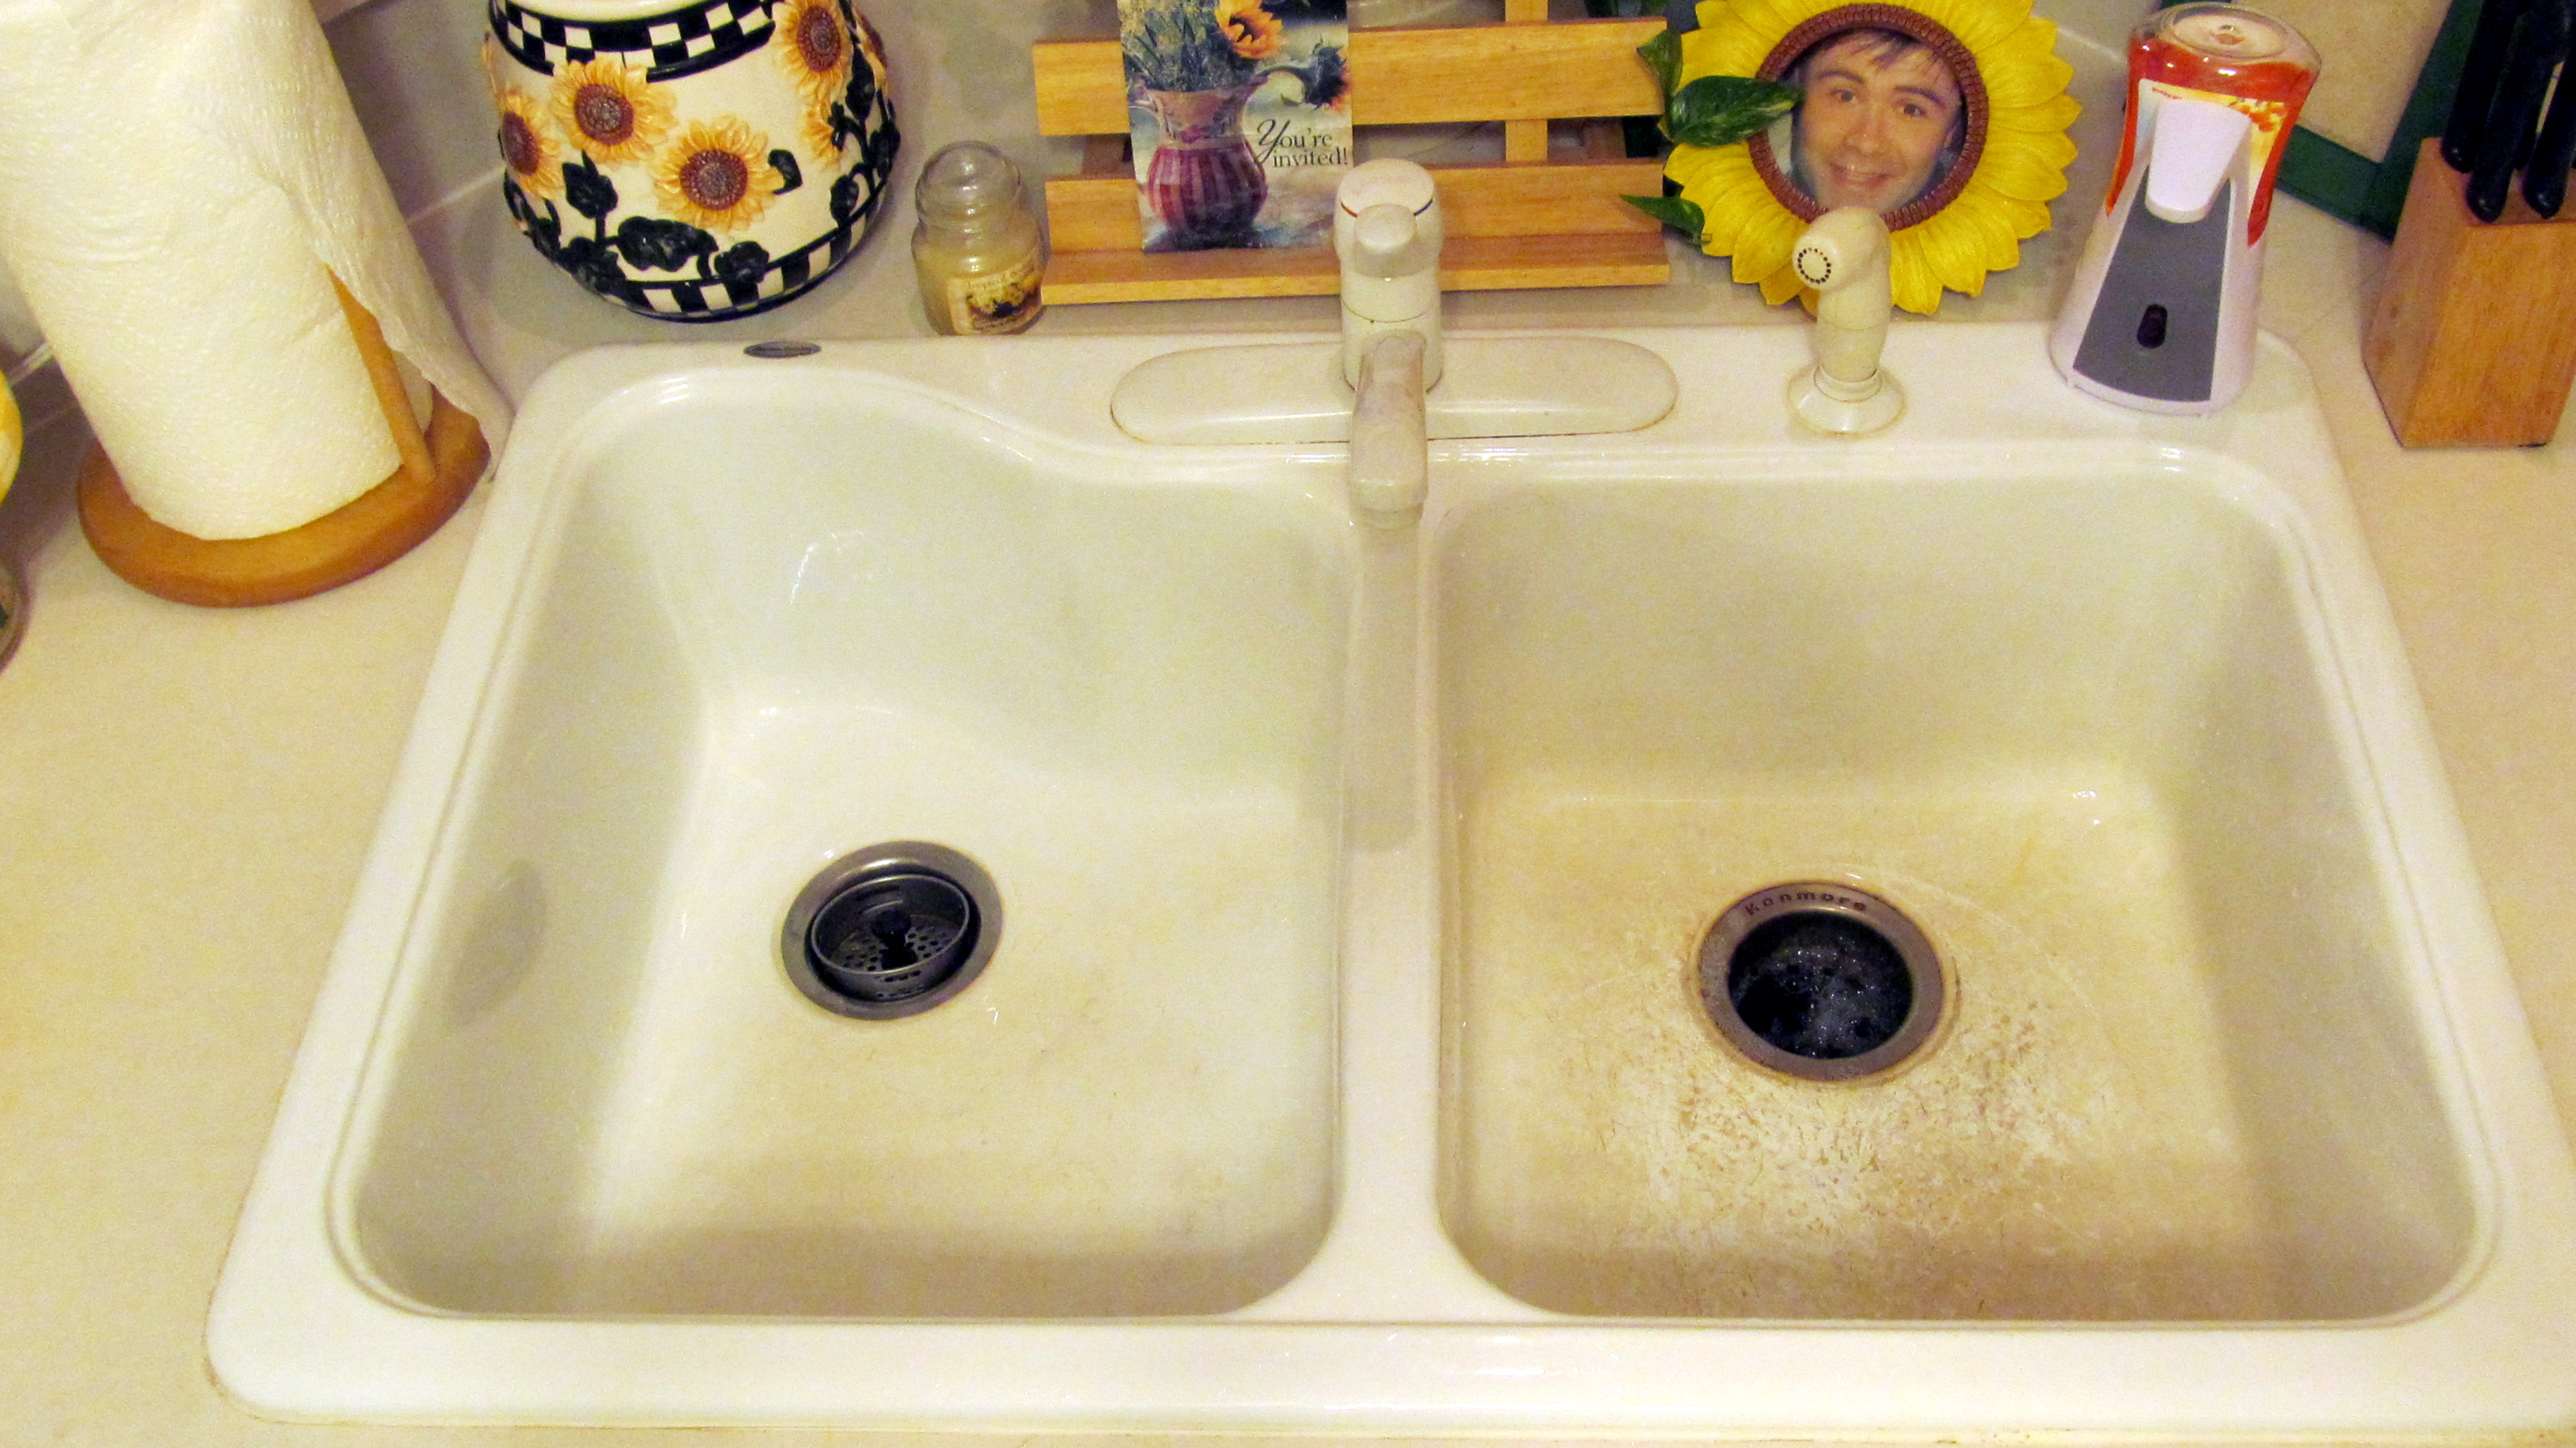 lovely How To Clean A White Kitchen Sink #3: Before and After